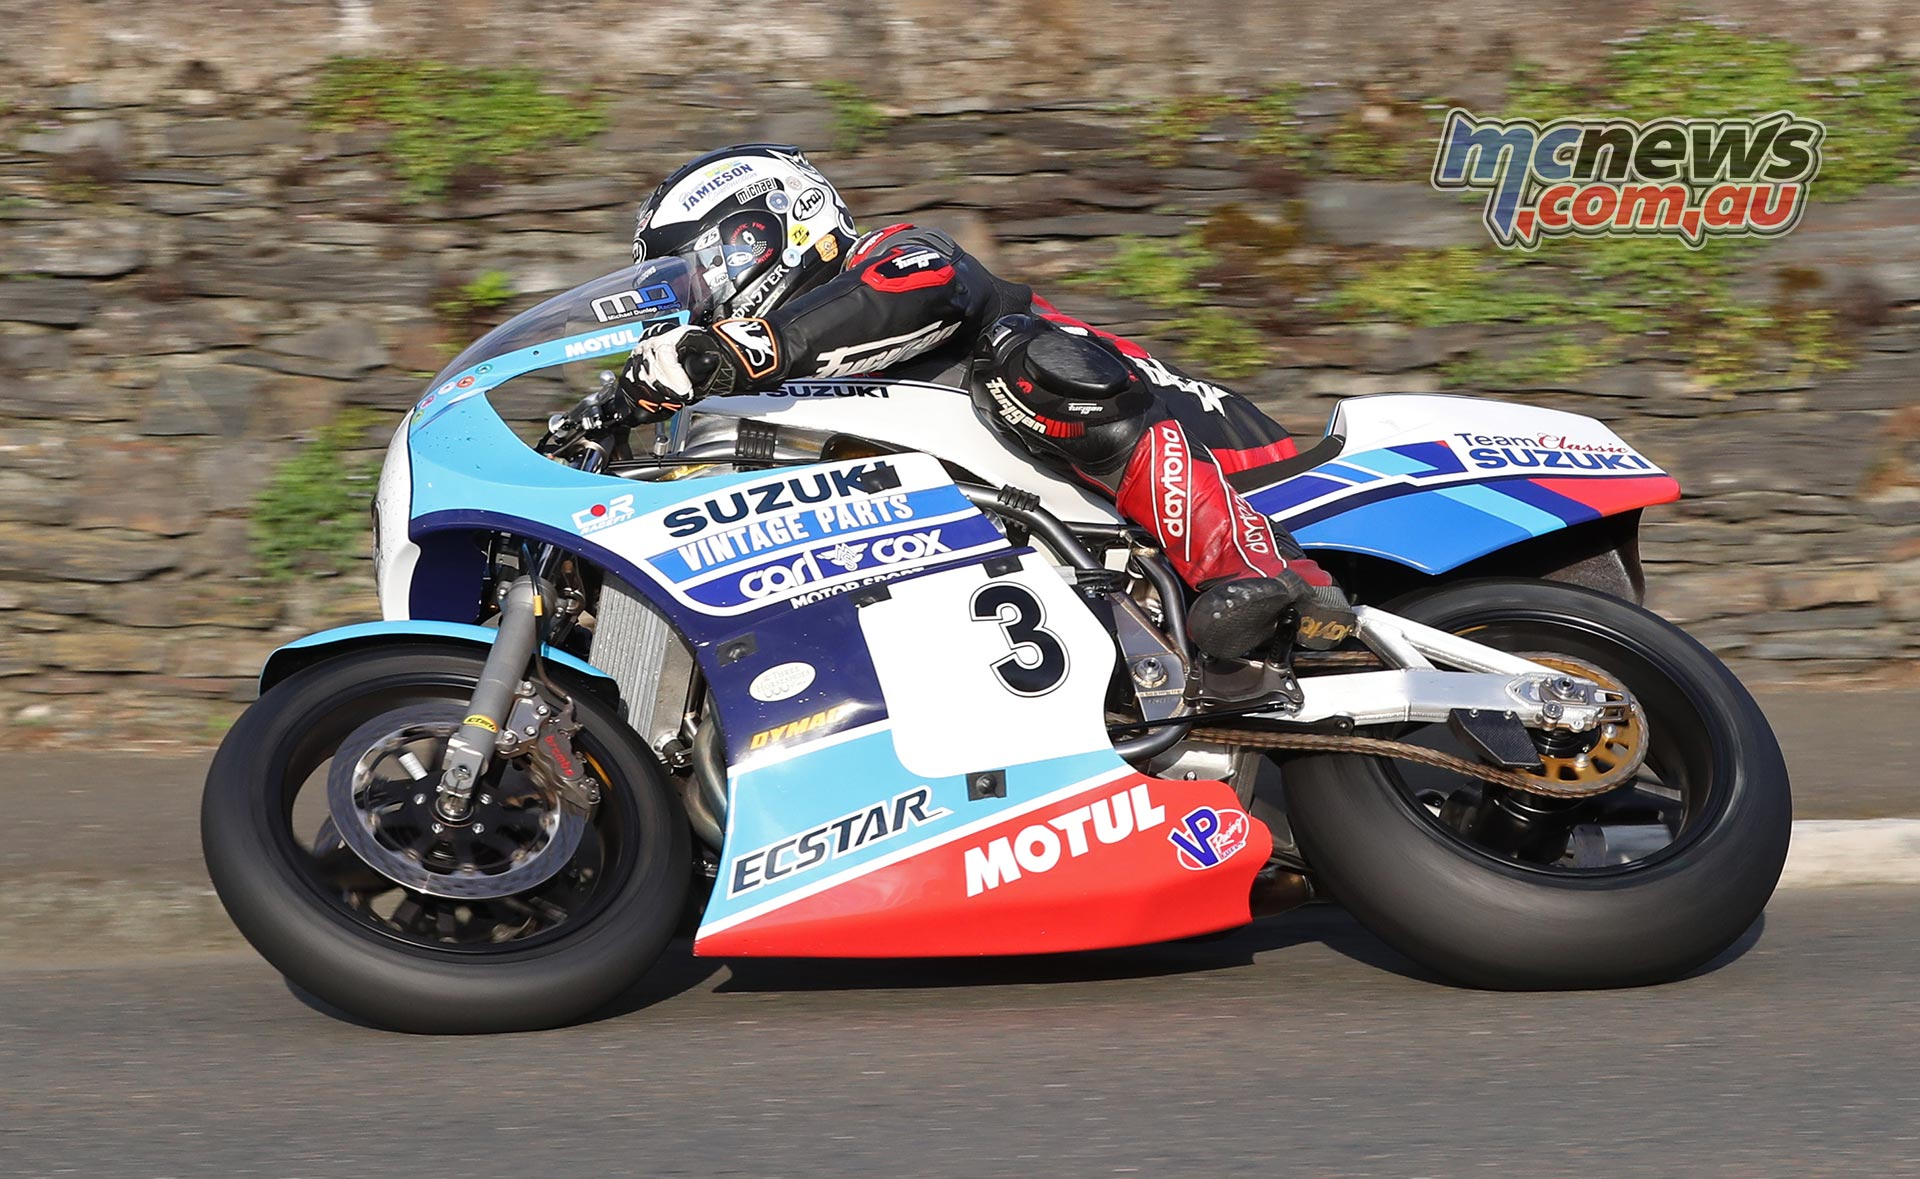 Michael Dunlop (1000 Suzuki/Team Classic Suzuki) at Douglas Road corner, Kirk Michael during Friday evening's Classic TT qualifying session. PICTURE BY DAVE KNEEN/PACEMAKER PRESS